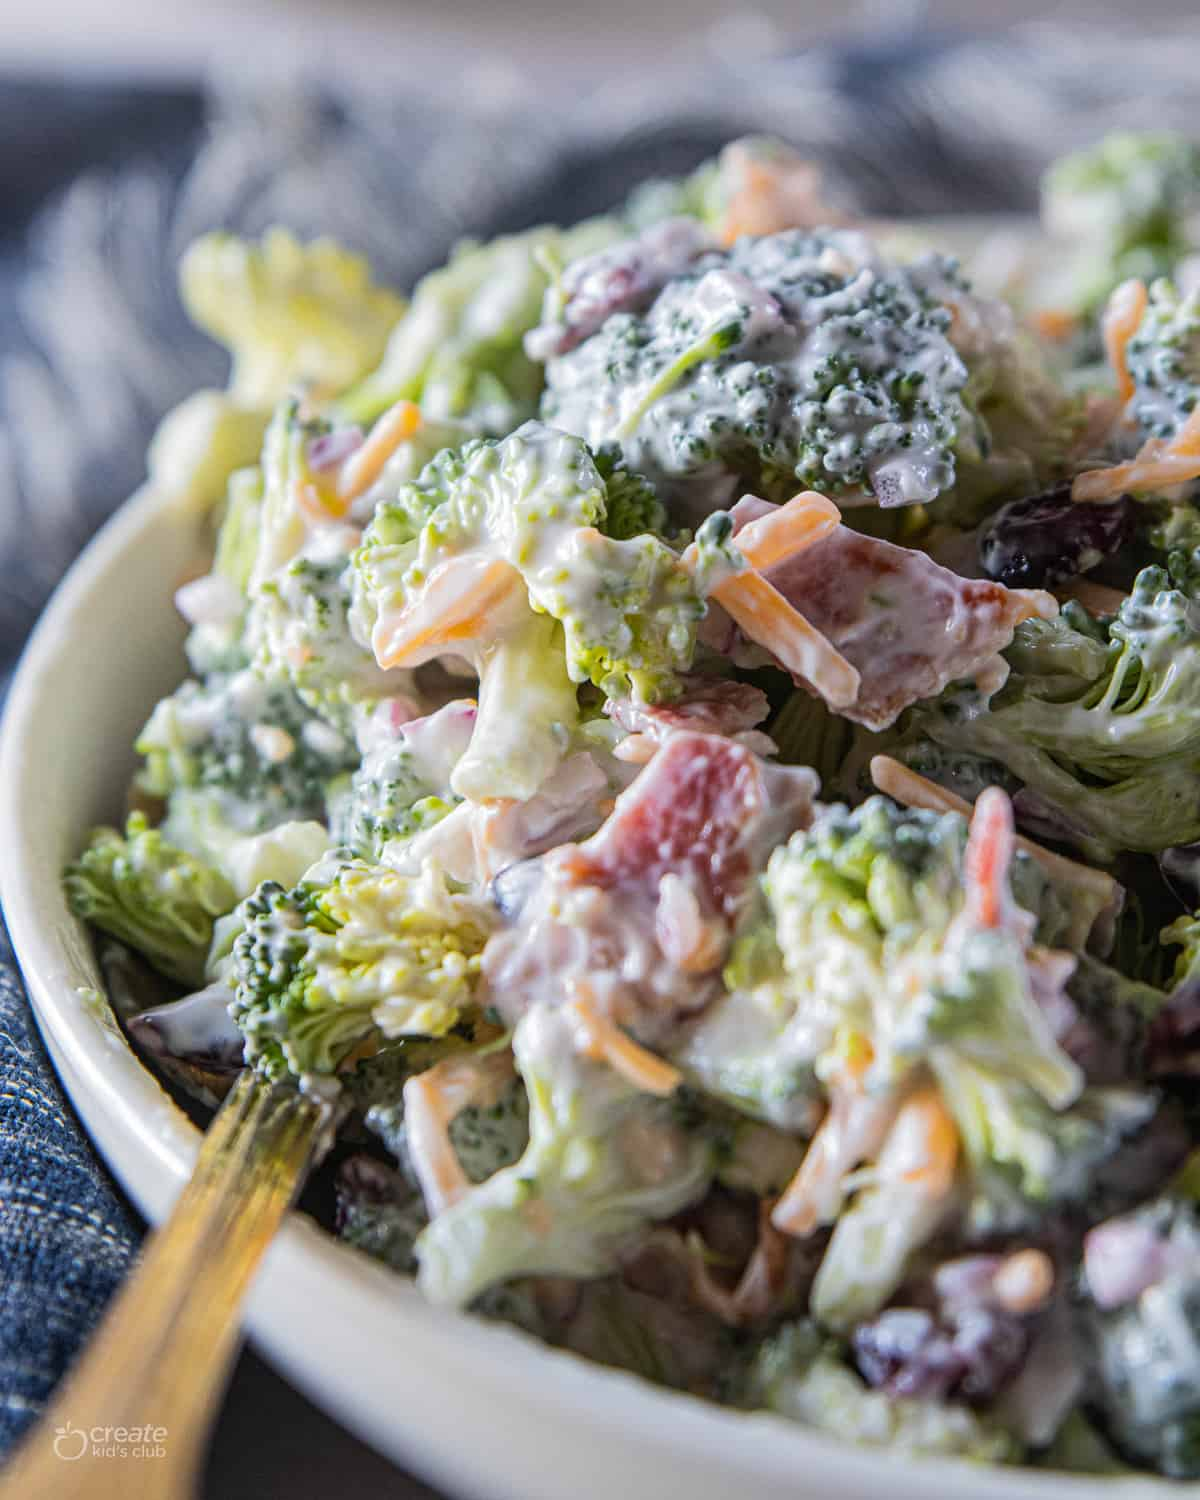 Broccoli salad in serving bowl with a spoon